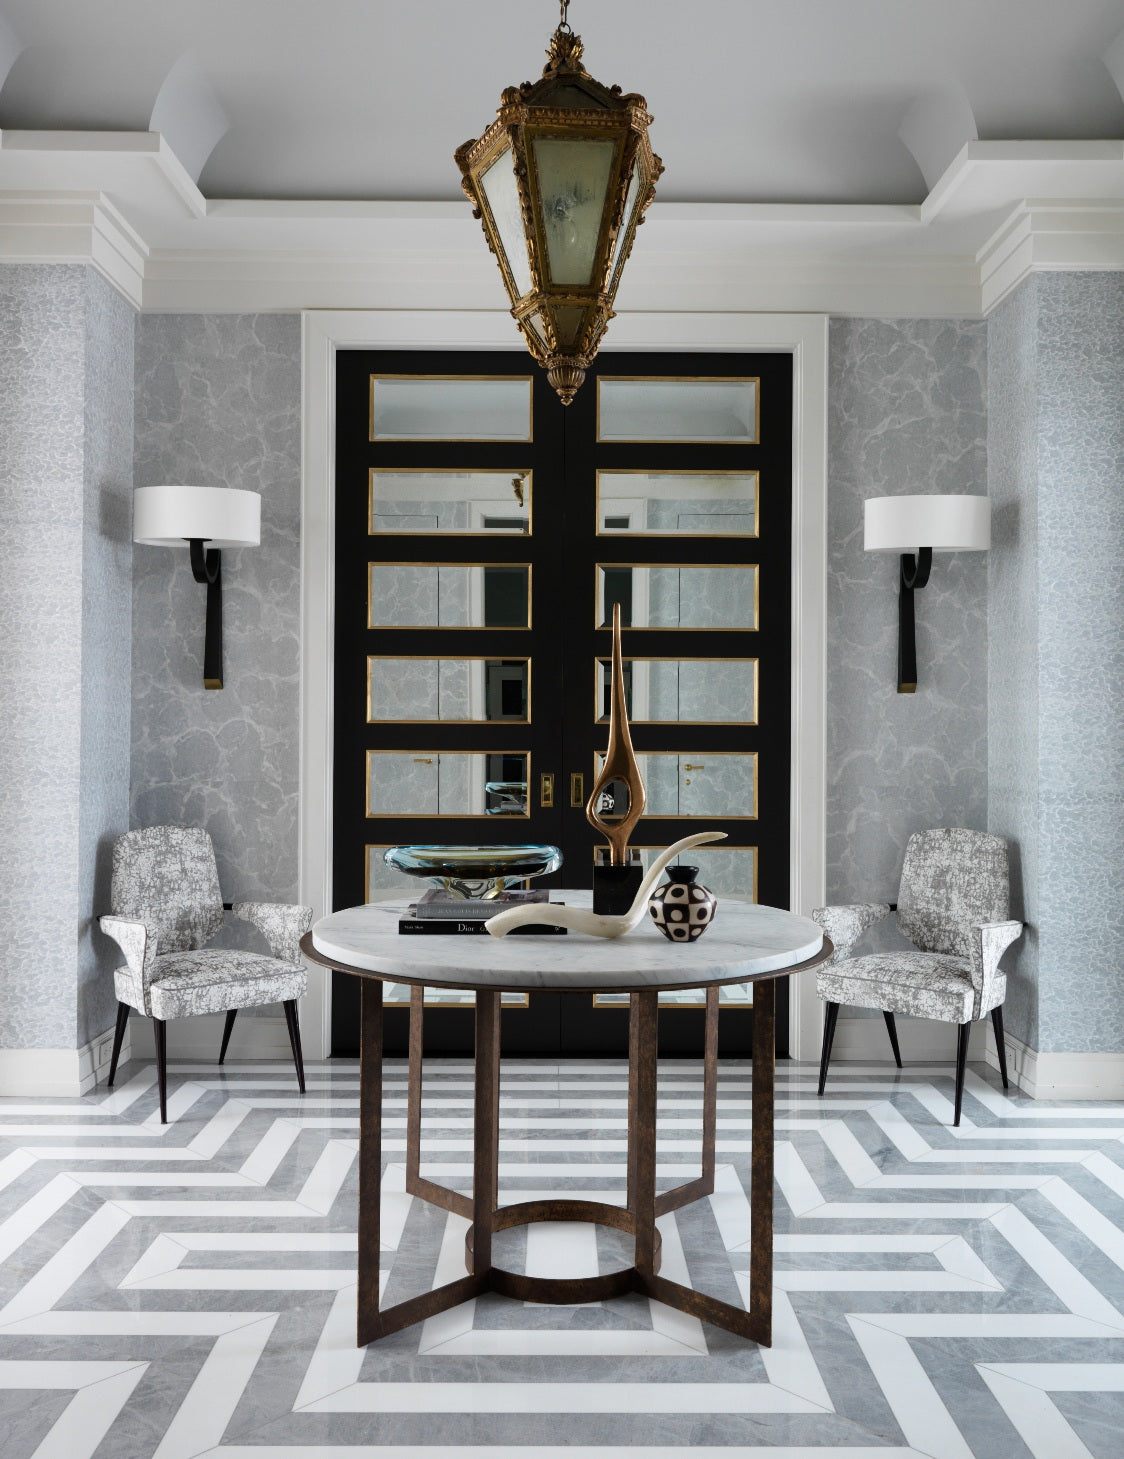 How To Style Your Round Entryway Table – Jean-Louis-Deniot – LuxDeco.com Style Guide